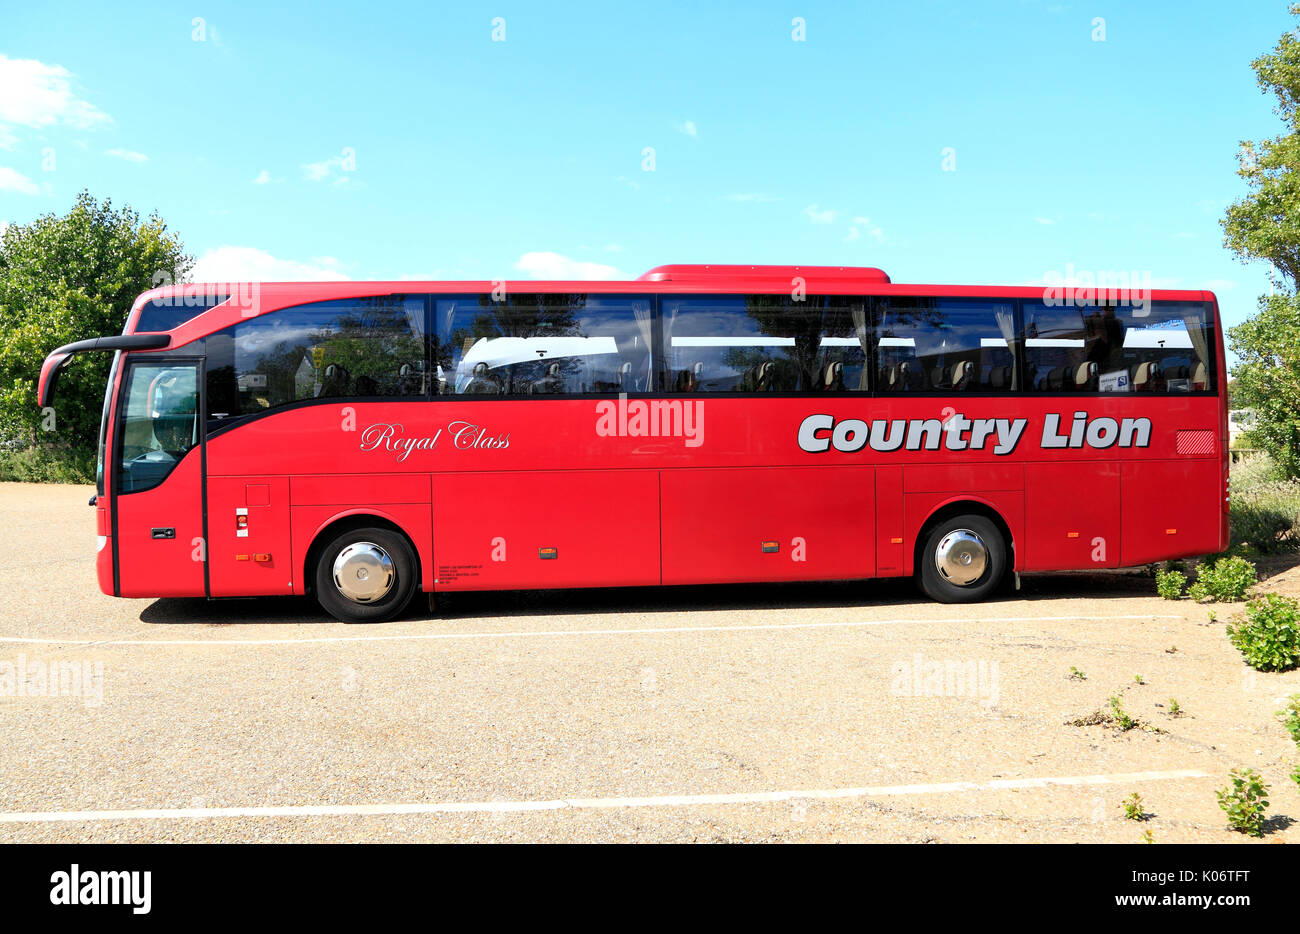 Country Lion, Royal Class, Coaches, coach, Travel, day trip, trips, excursion, excursions, travel company, companies, - Stock Image